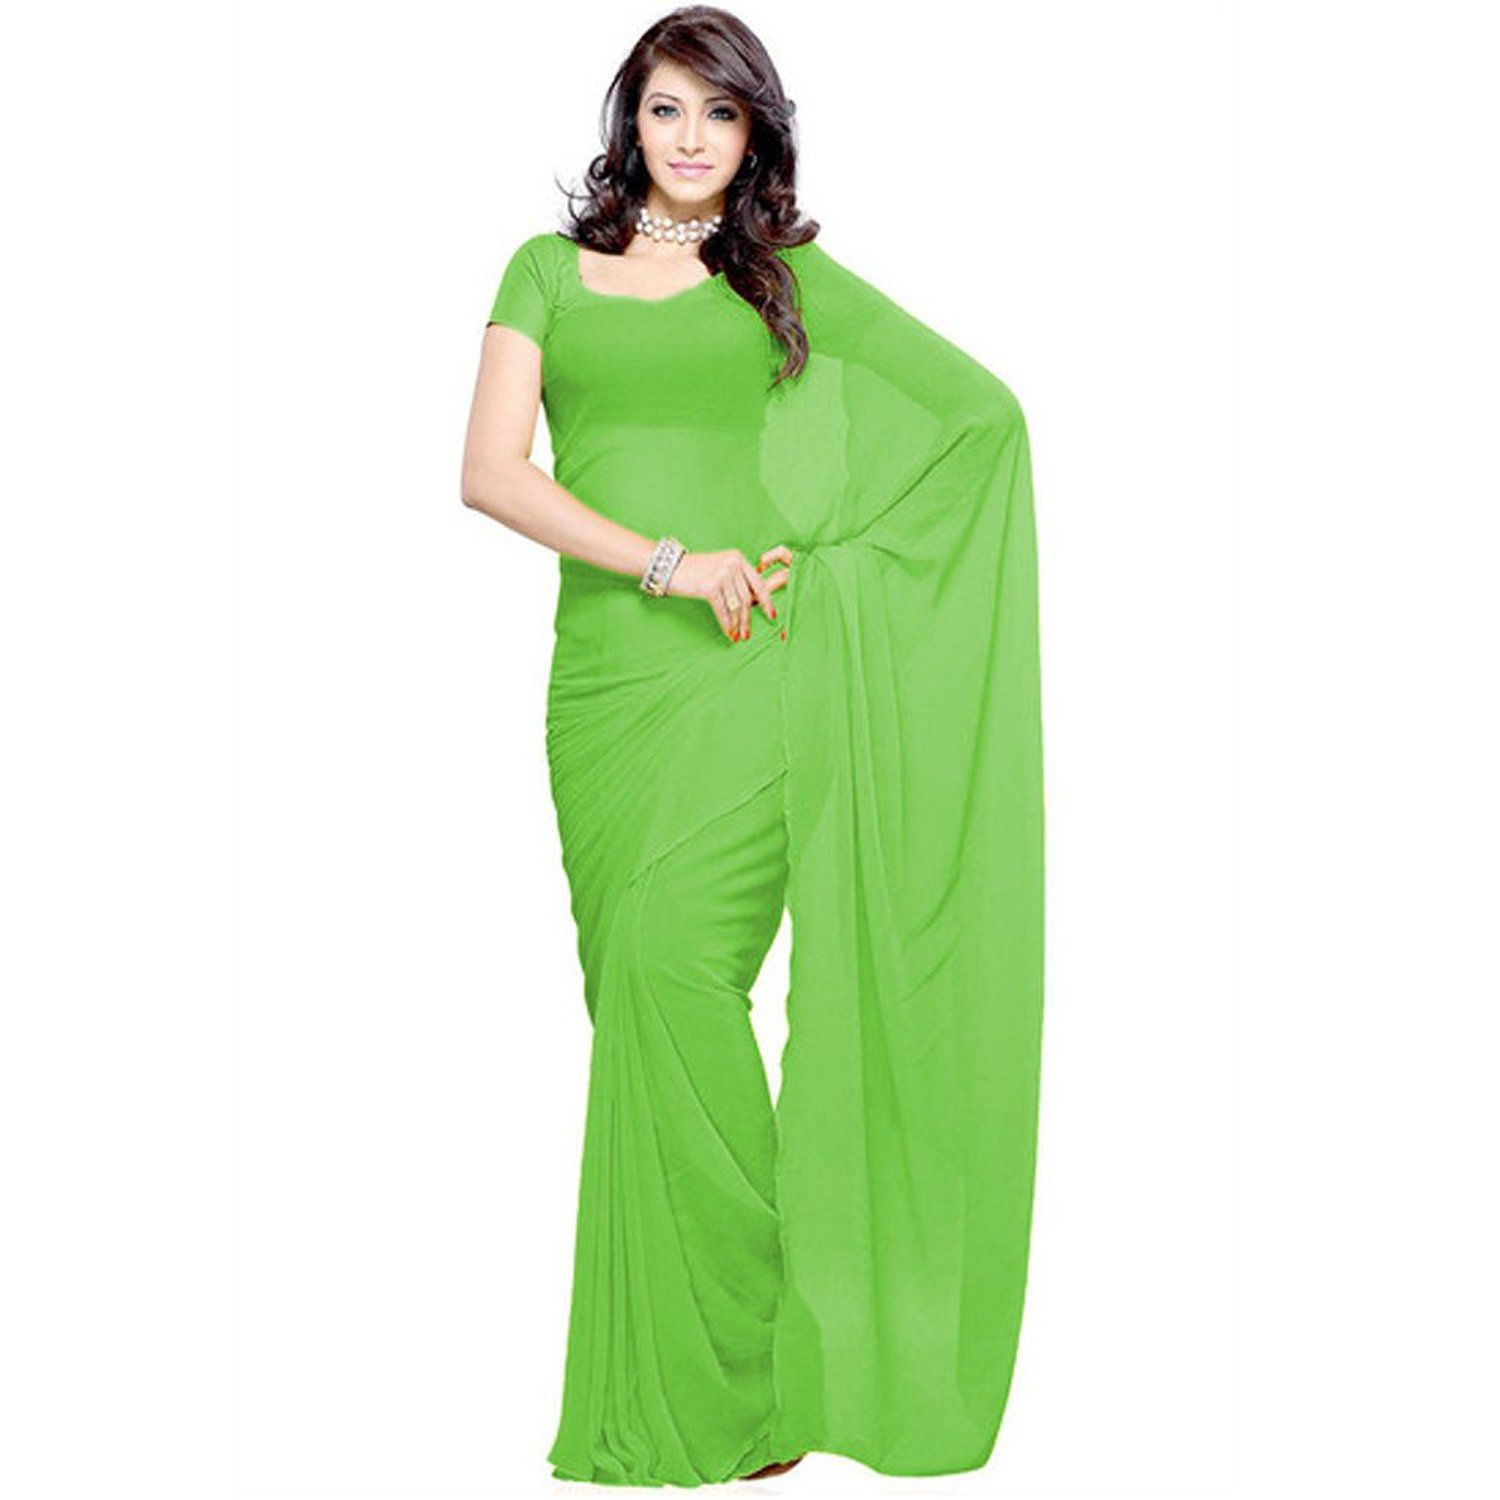 Fragrance Trendz Green Chiffon Saree